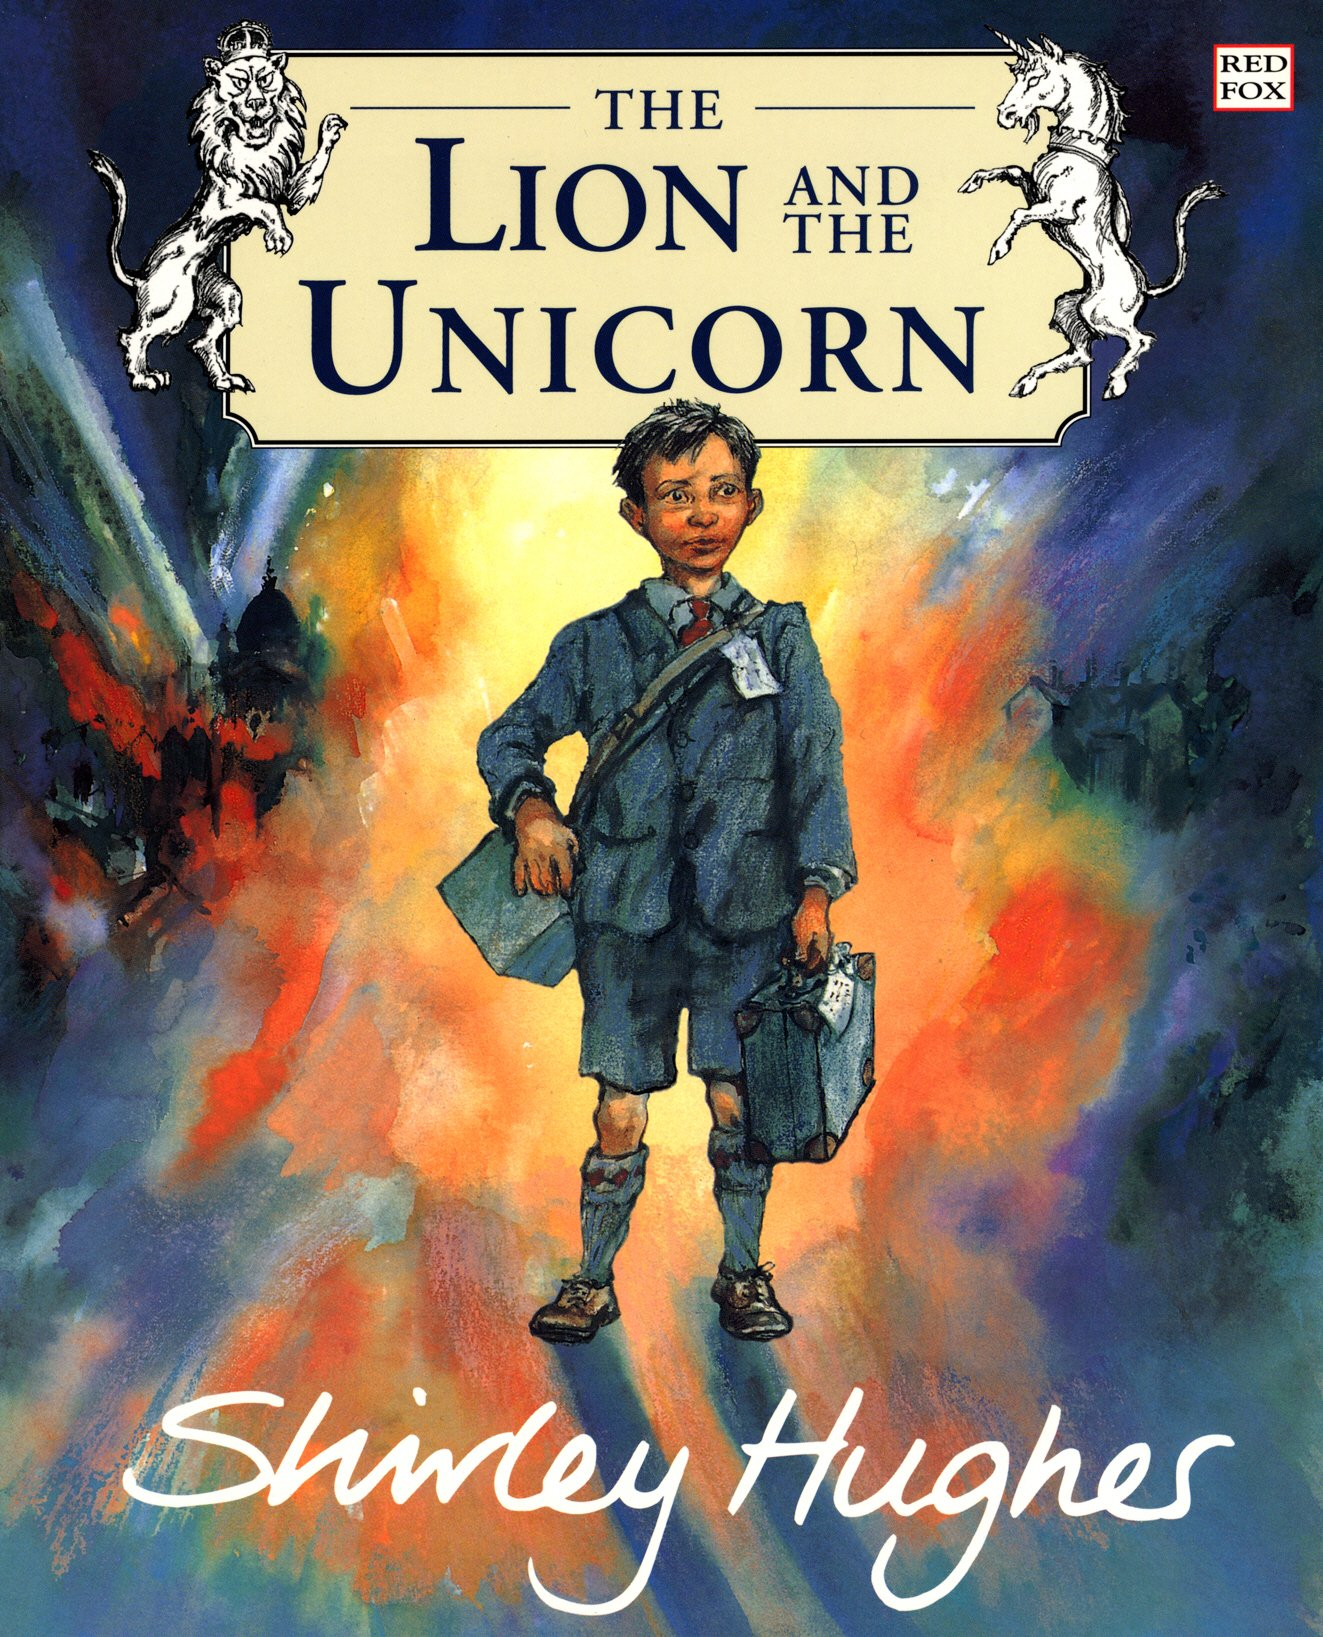 Image result for the lion and the unicorn